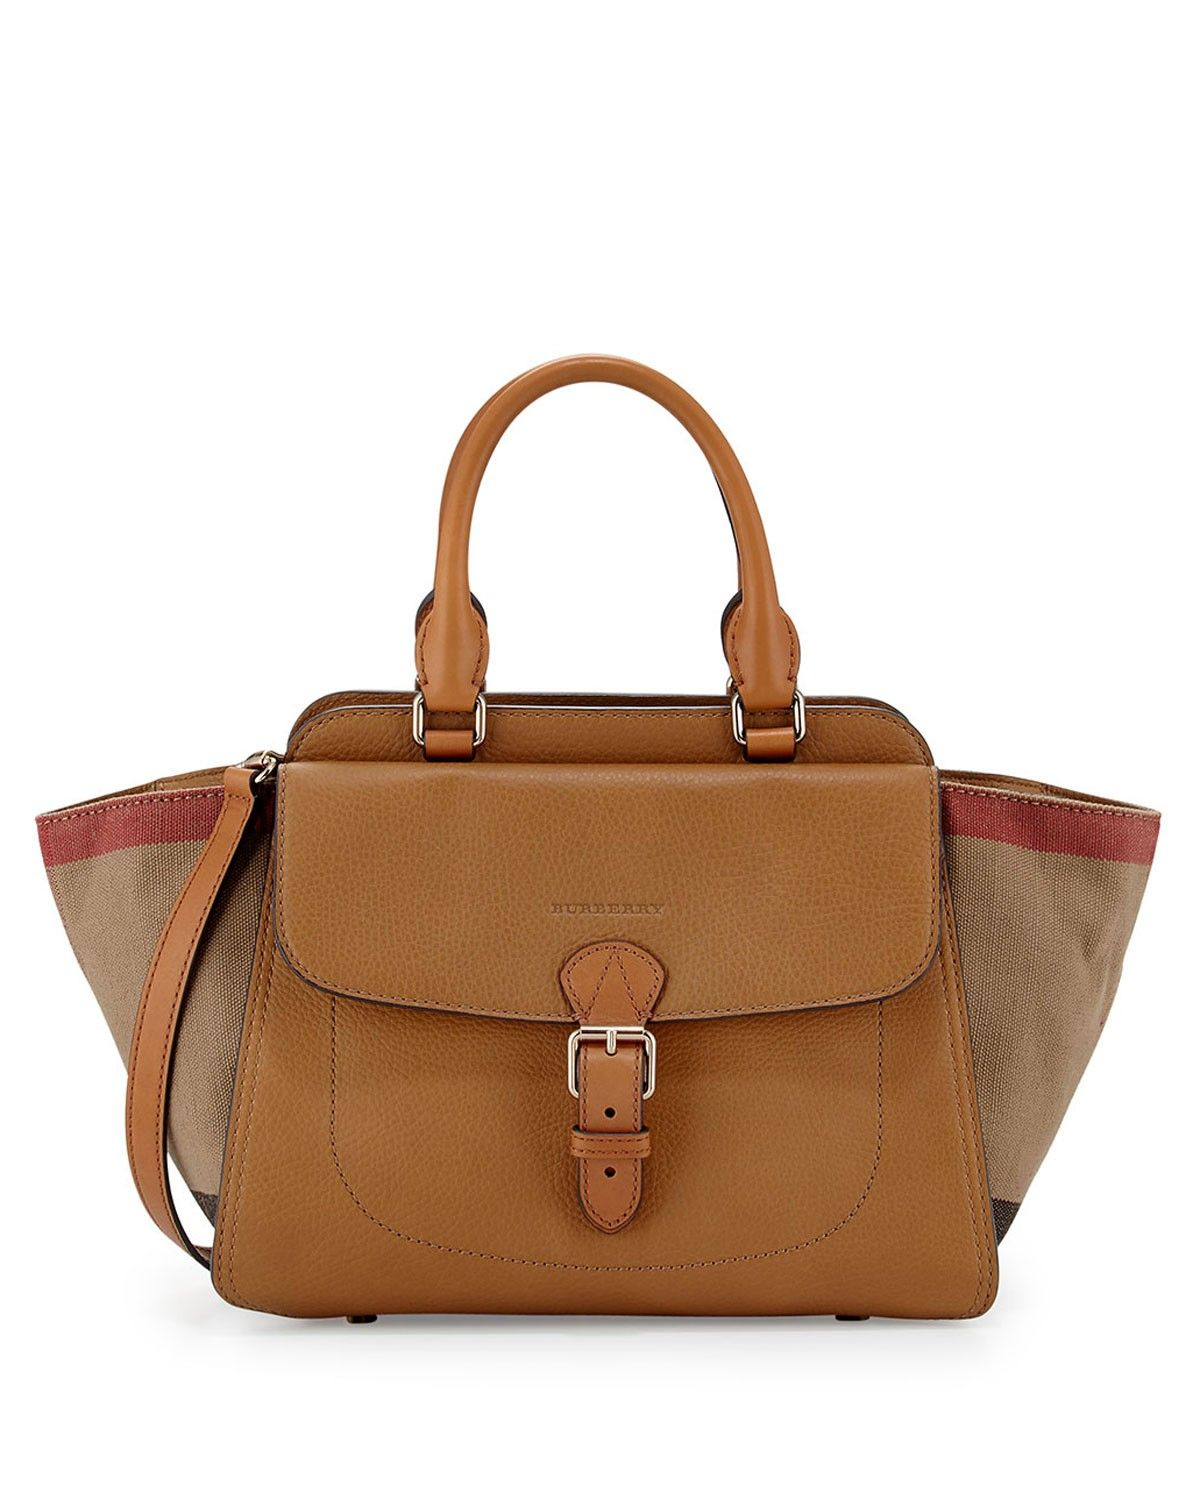 fdaf2ba7662c Burberry Brit Medium Grainy Canvas Check Satchel Bag Brown w Double Handles